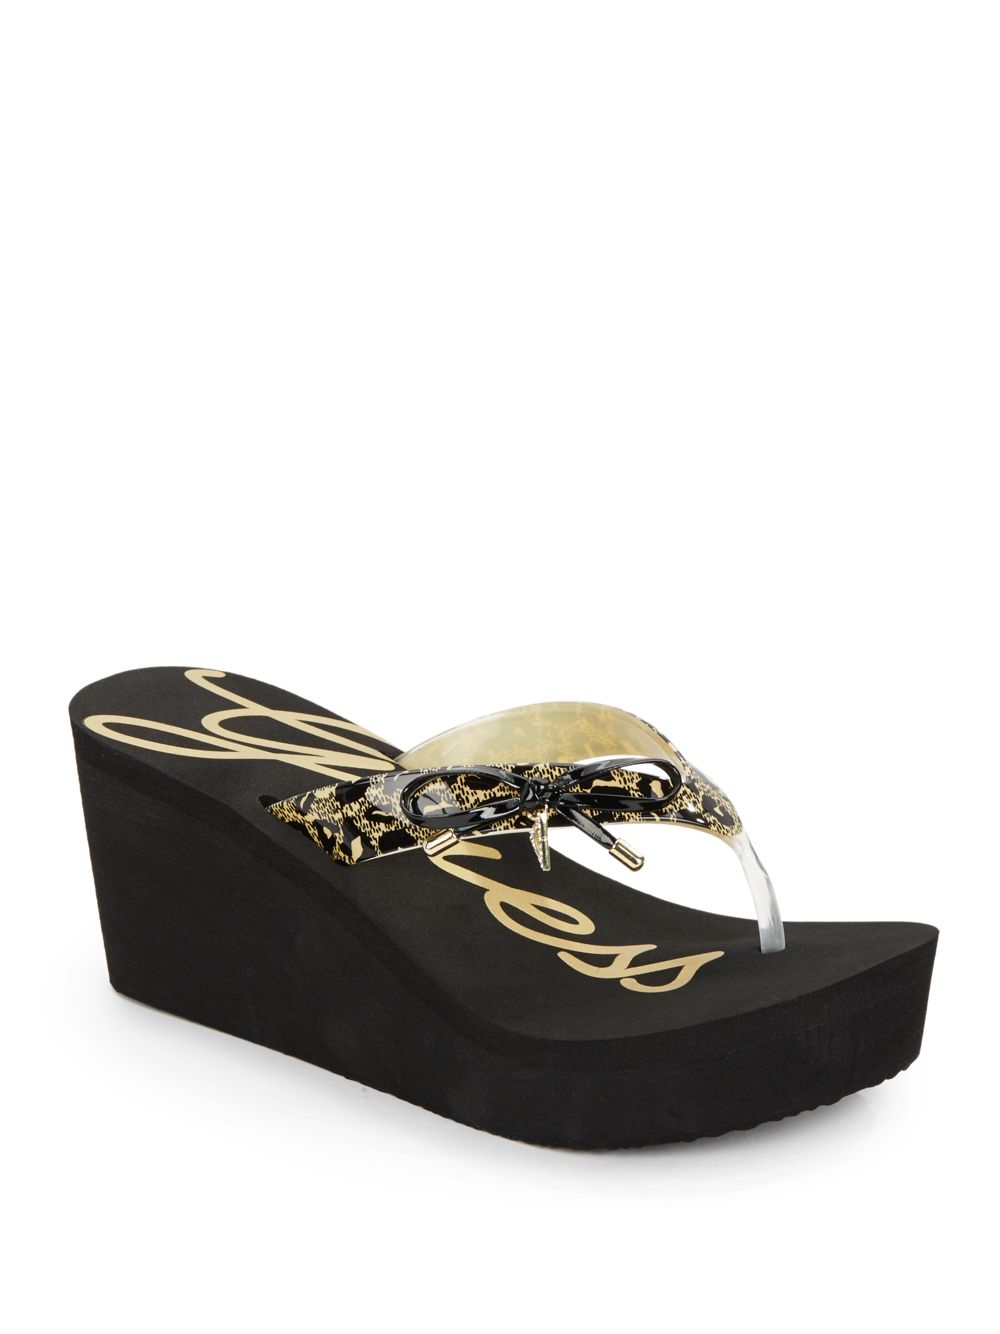 ac702558cb7955 Lyst - Guess Syona Leopard-Print Bow Platform Wedge Sandals in Black